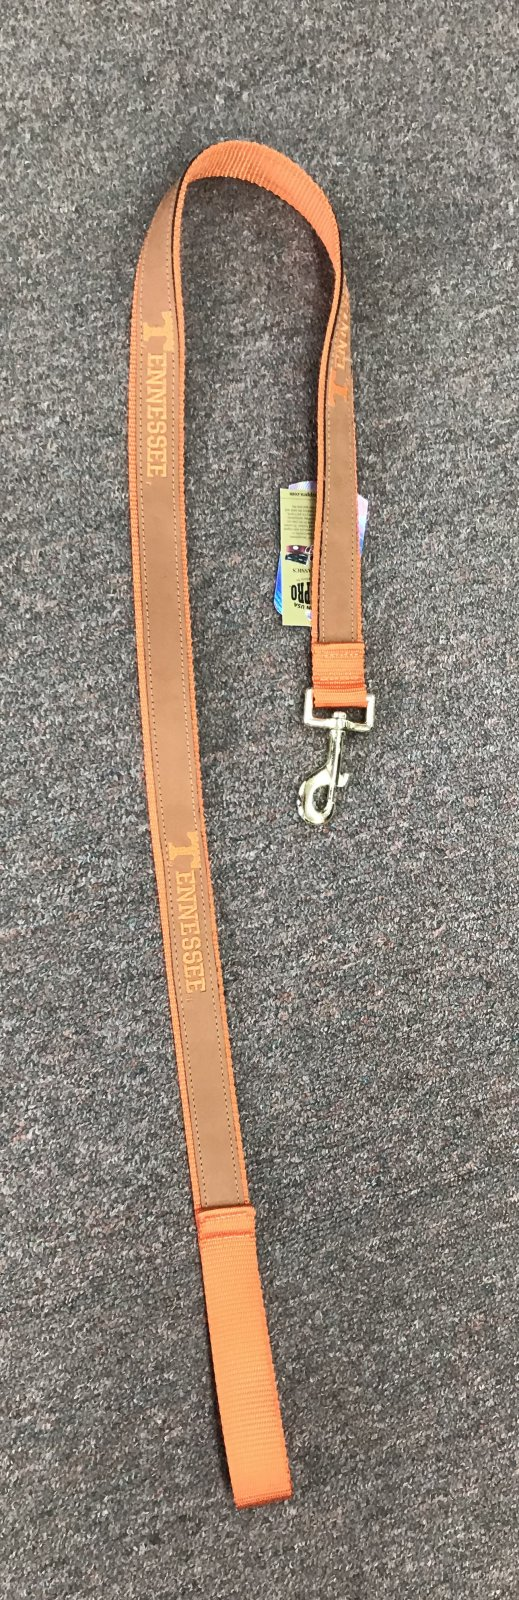 Zepro UT Dog Leash